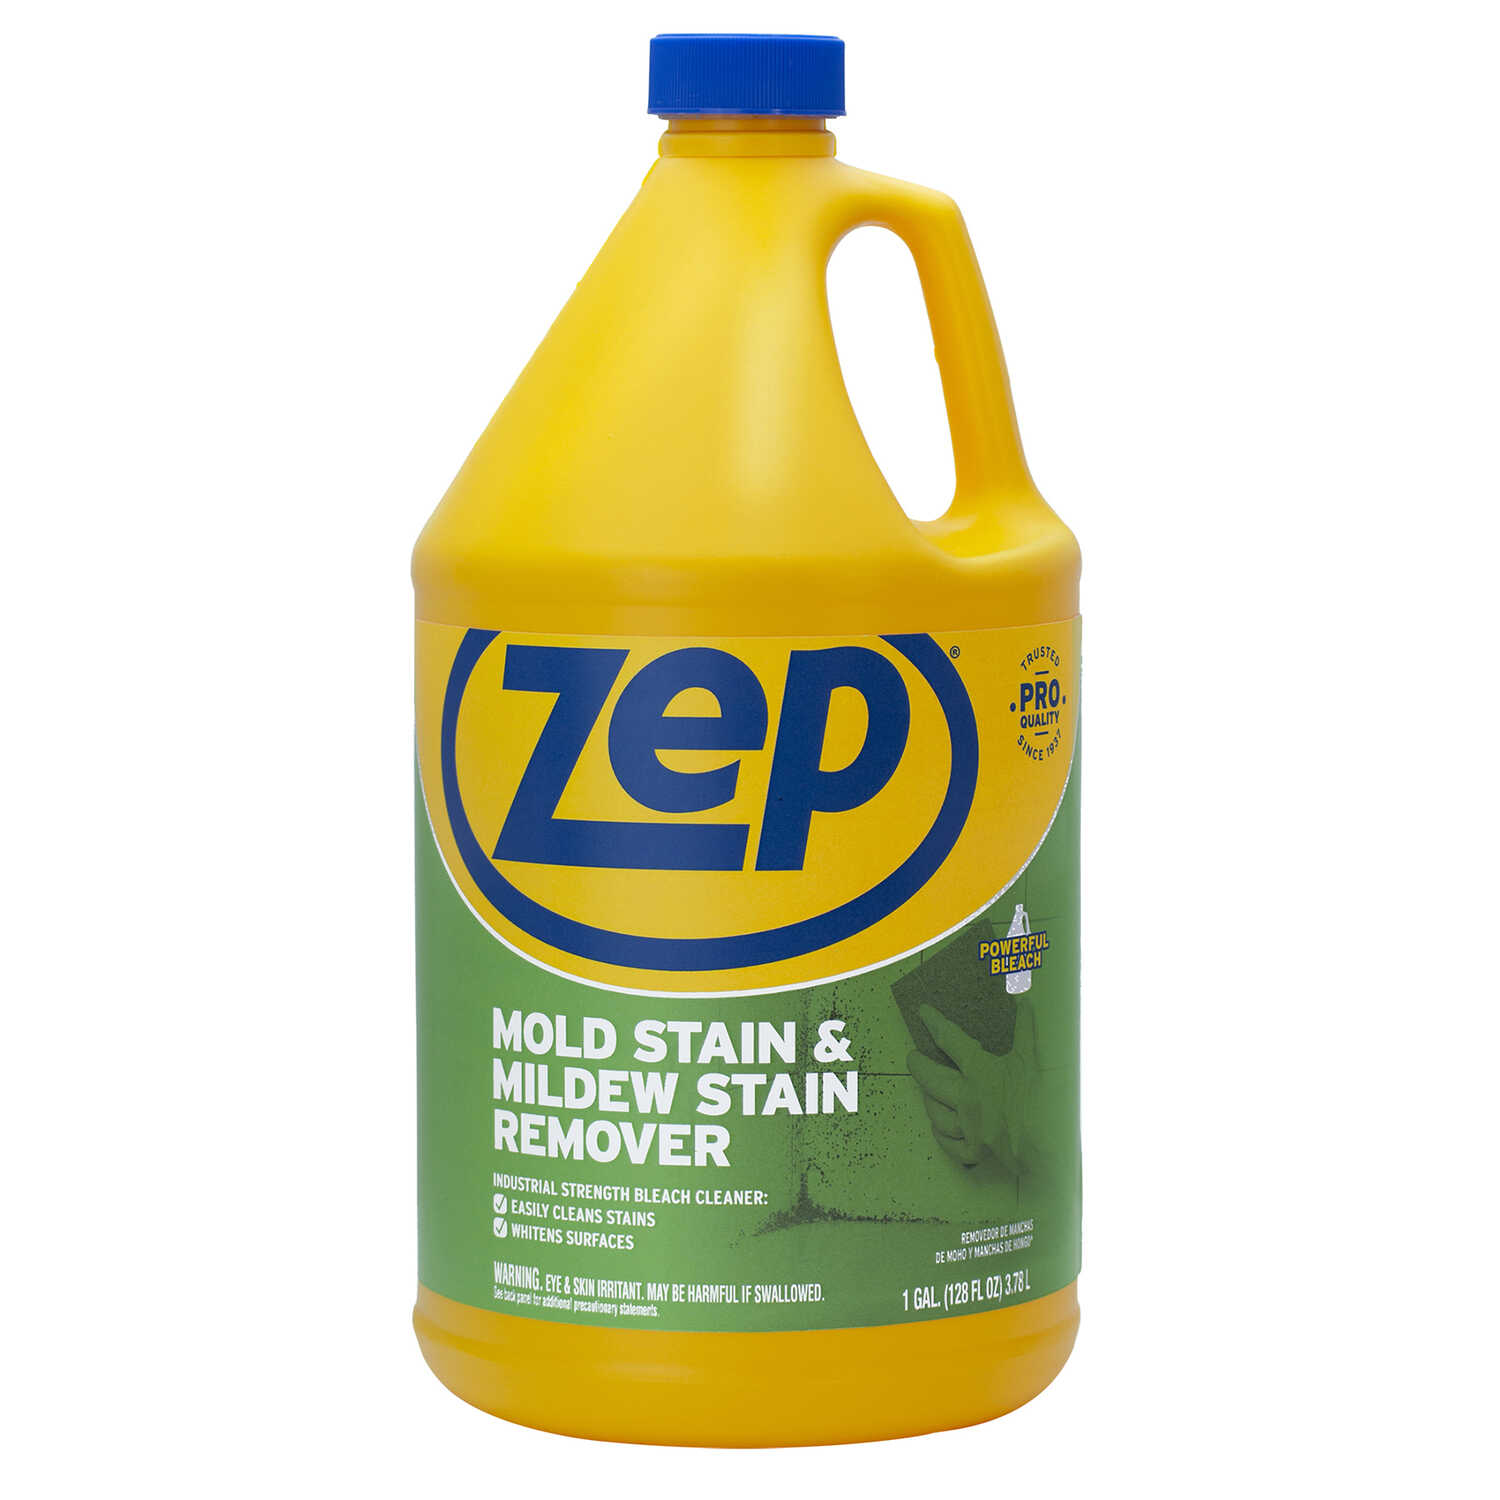 Zep  Mold and Mildew Stain Remover  1 gal.